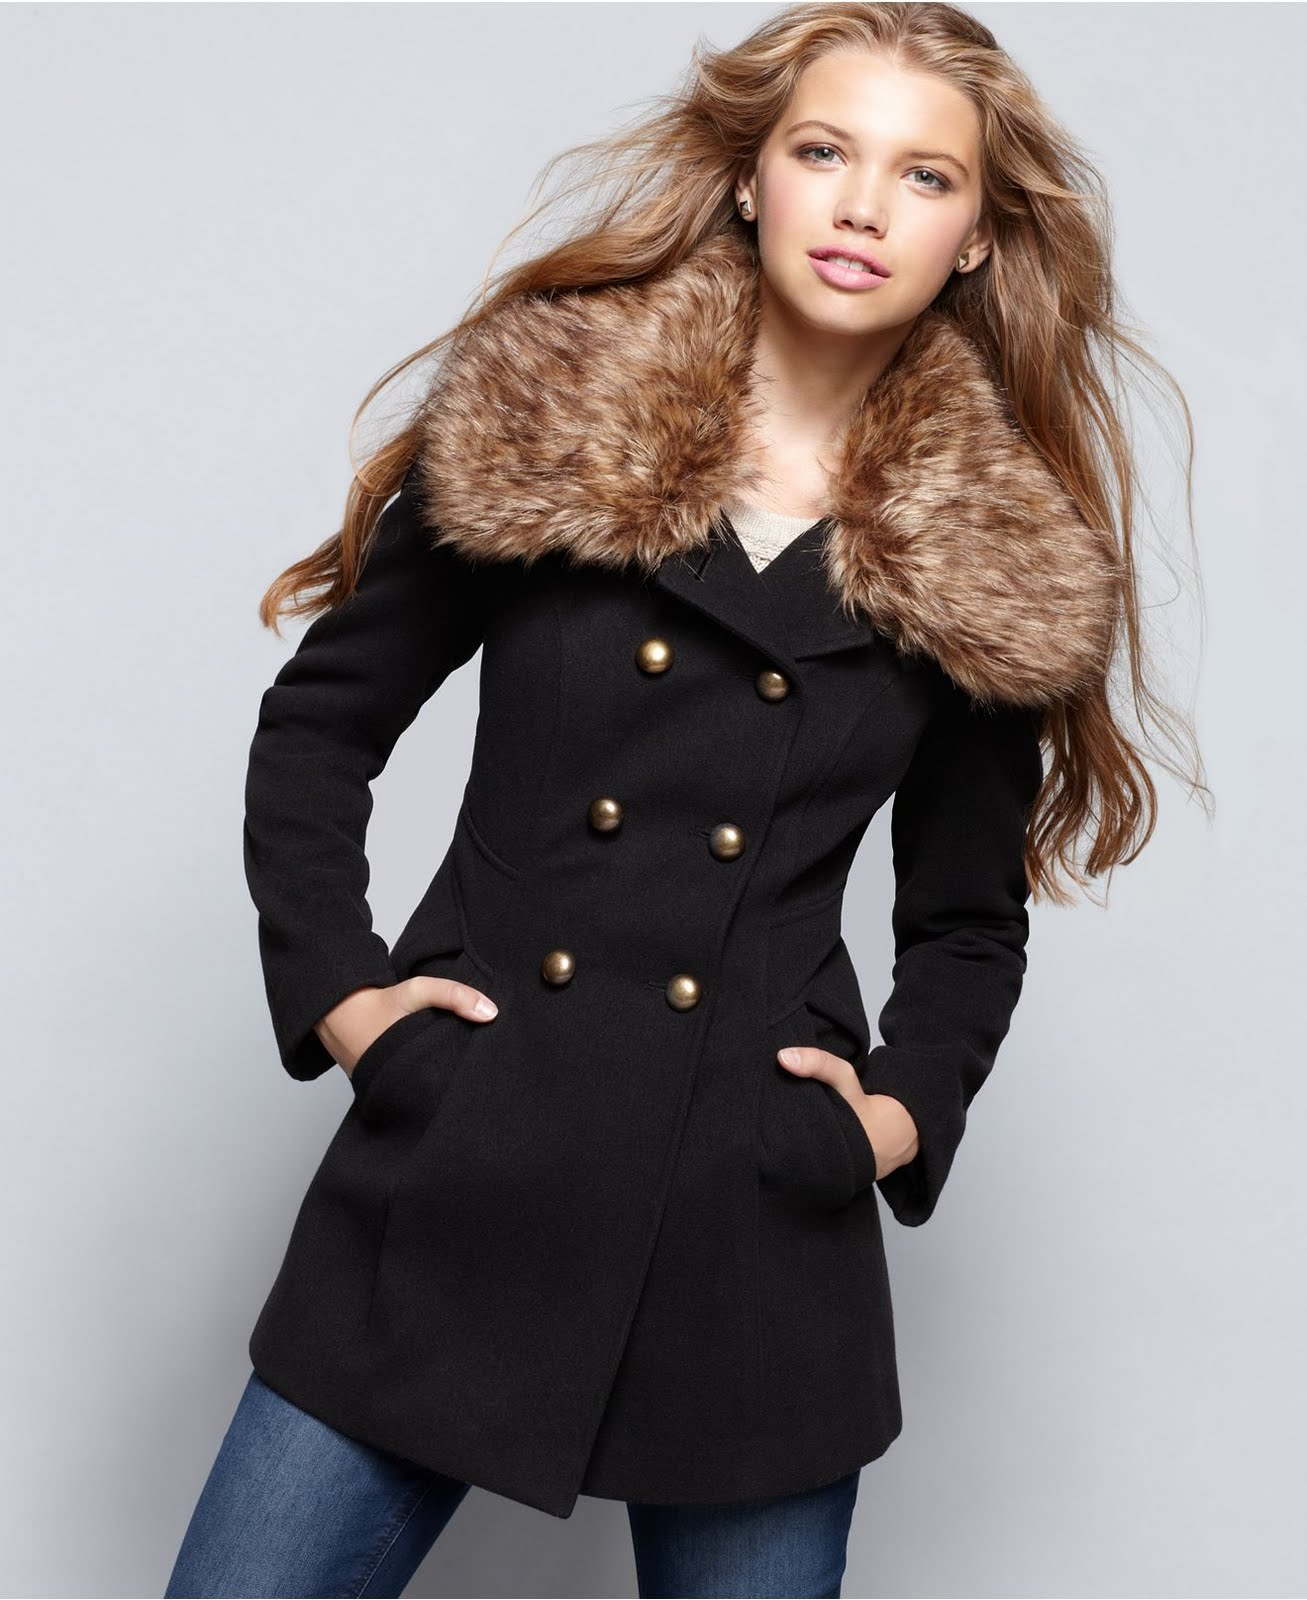 You searched for: fur collar coat! Etsy is the home to thousands of handmade, vintage, and one-of-a-kind products and gifts related to your search. No matter what you're looking for or where you are in the world, our global marketplace of sellers can help you find unique and affordable options. Let's get started!